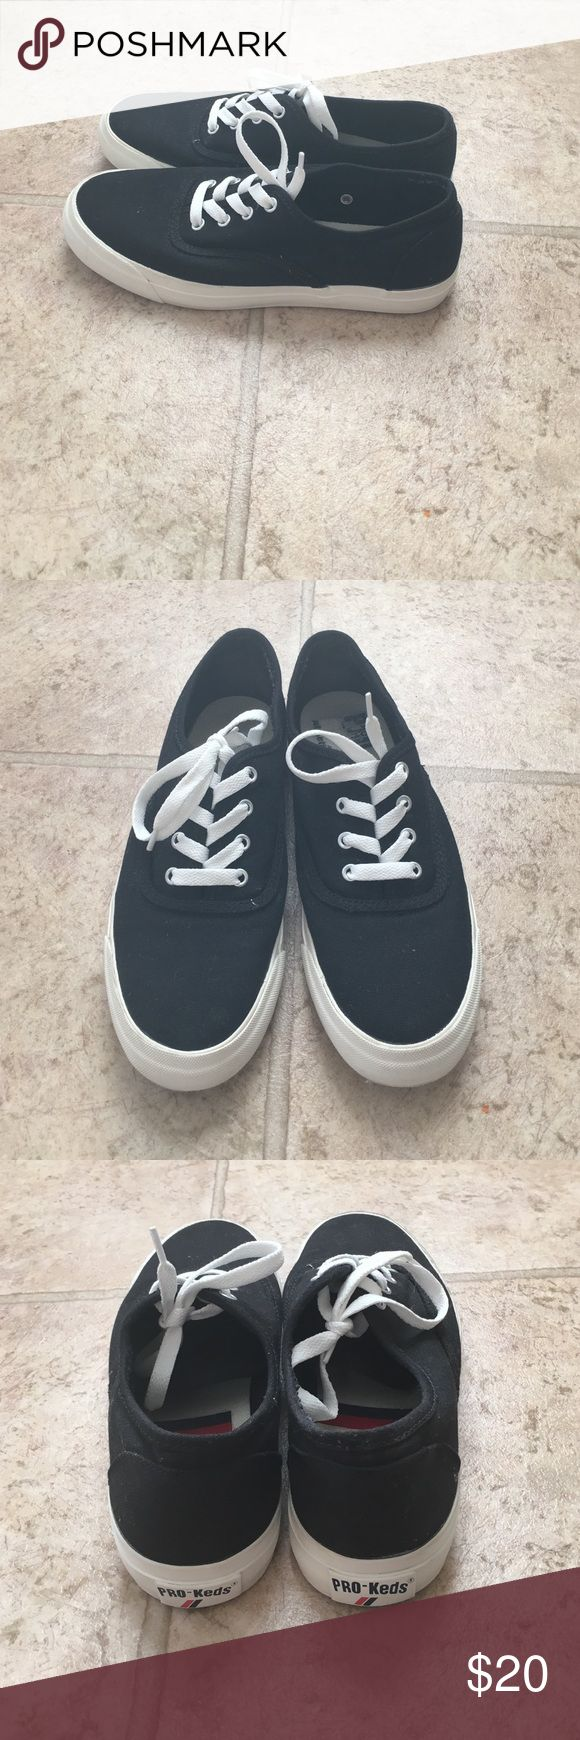 cheap white keds shoes